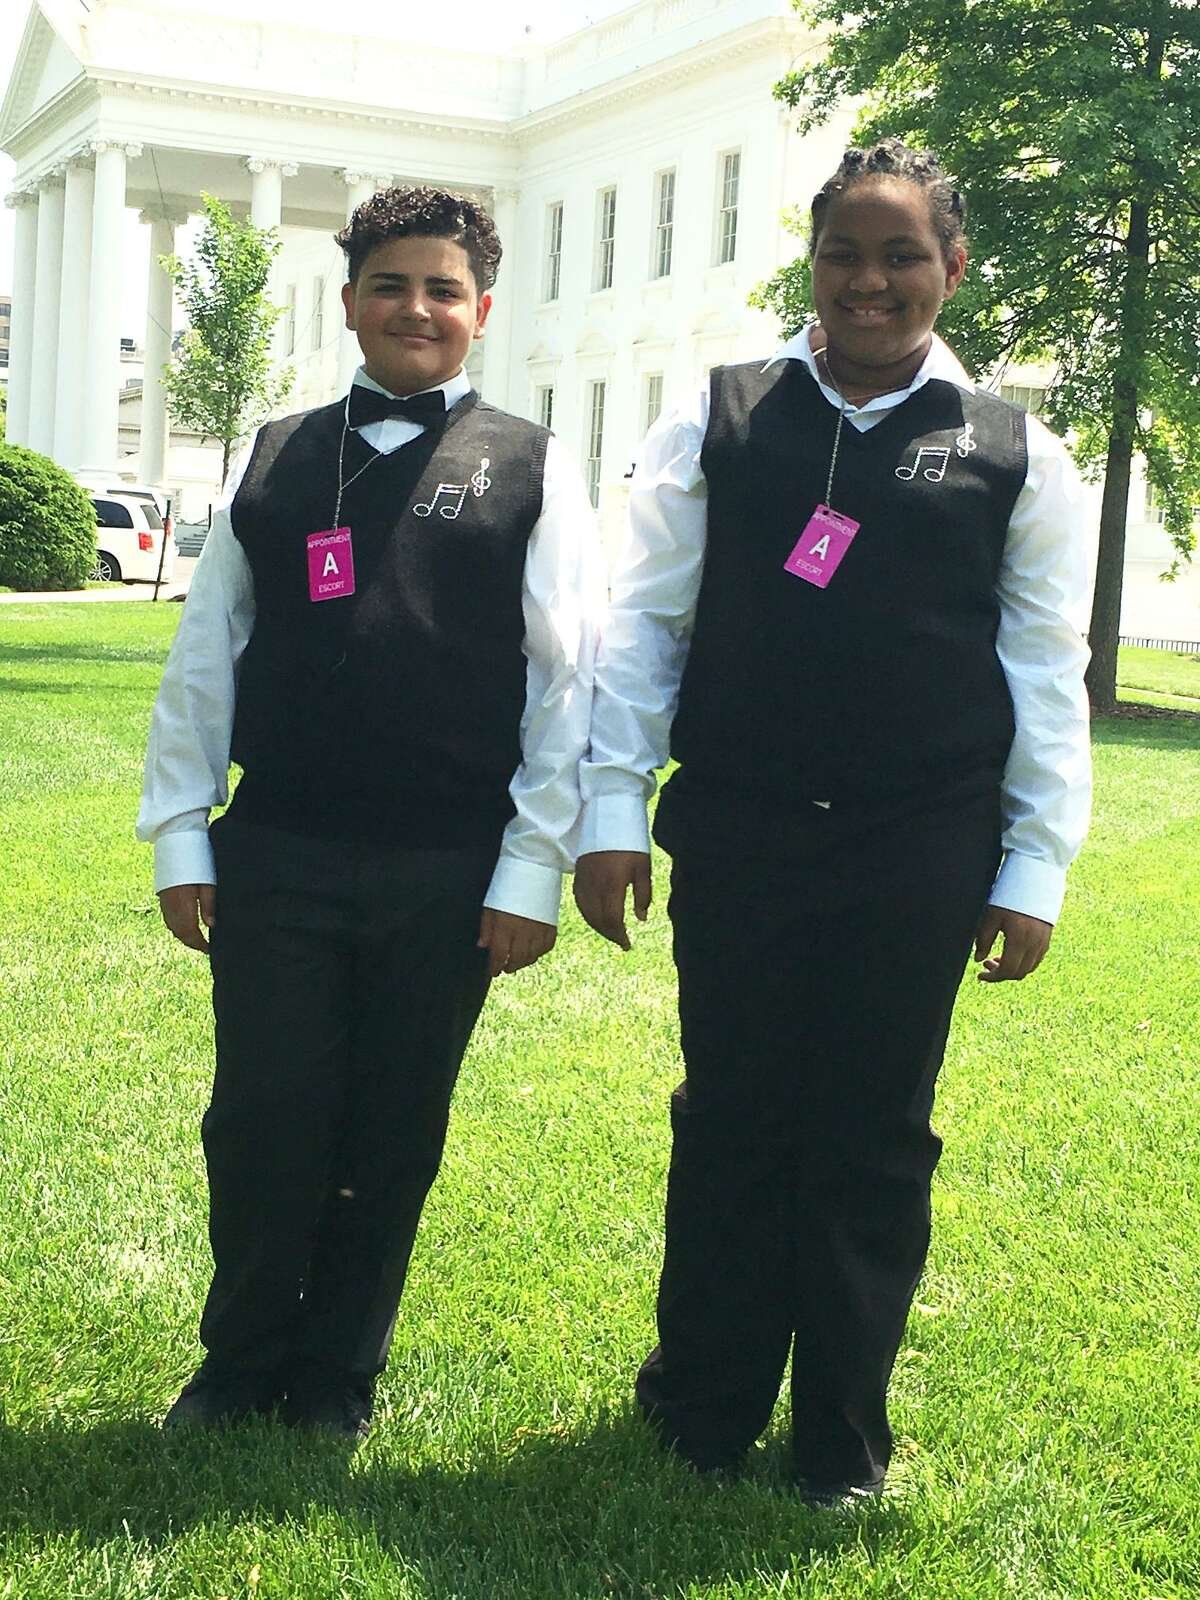 Jorge Collazo and Ashinea Brown, students from Tisdale School in Bridgeport, during a visit to the White House in Washington D.C. May 25, 2016. A group of sixth-graders from Tisdale School were part of the Turnaround Arts talent show.